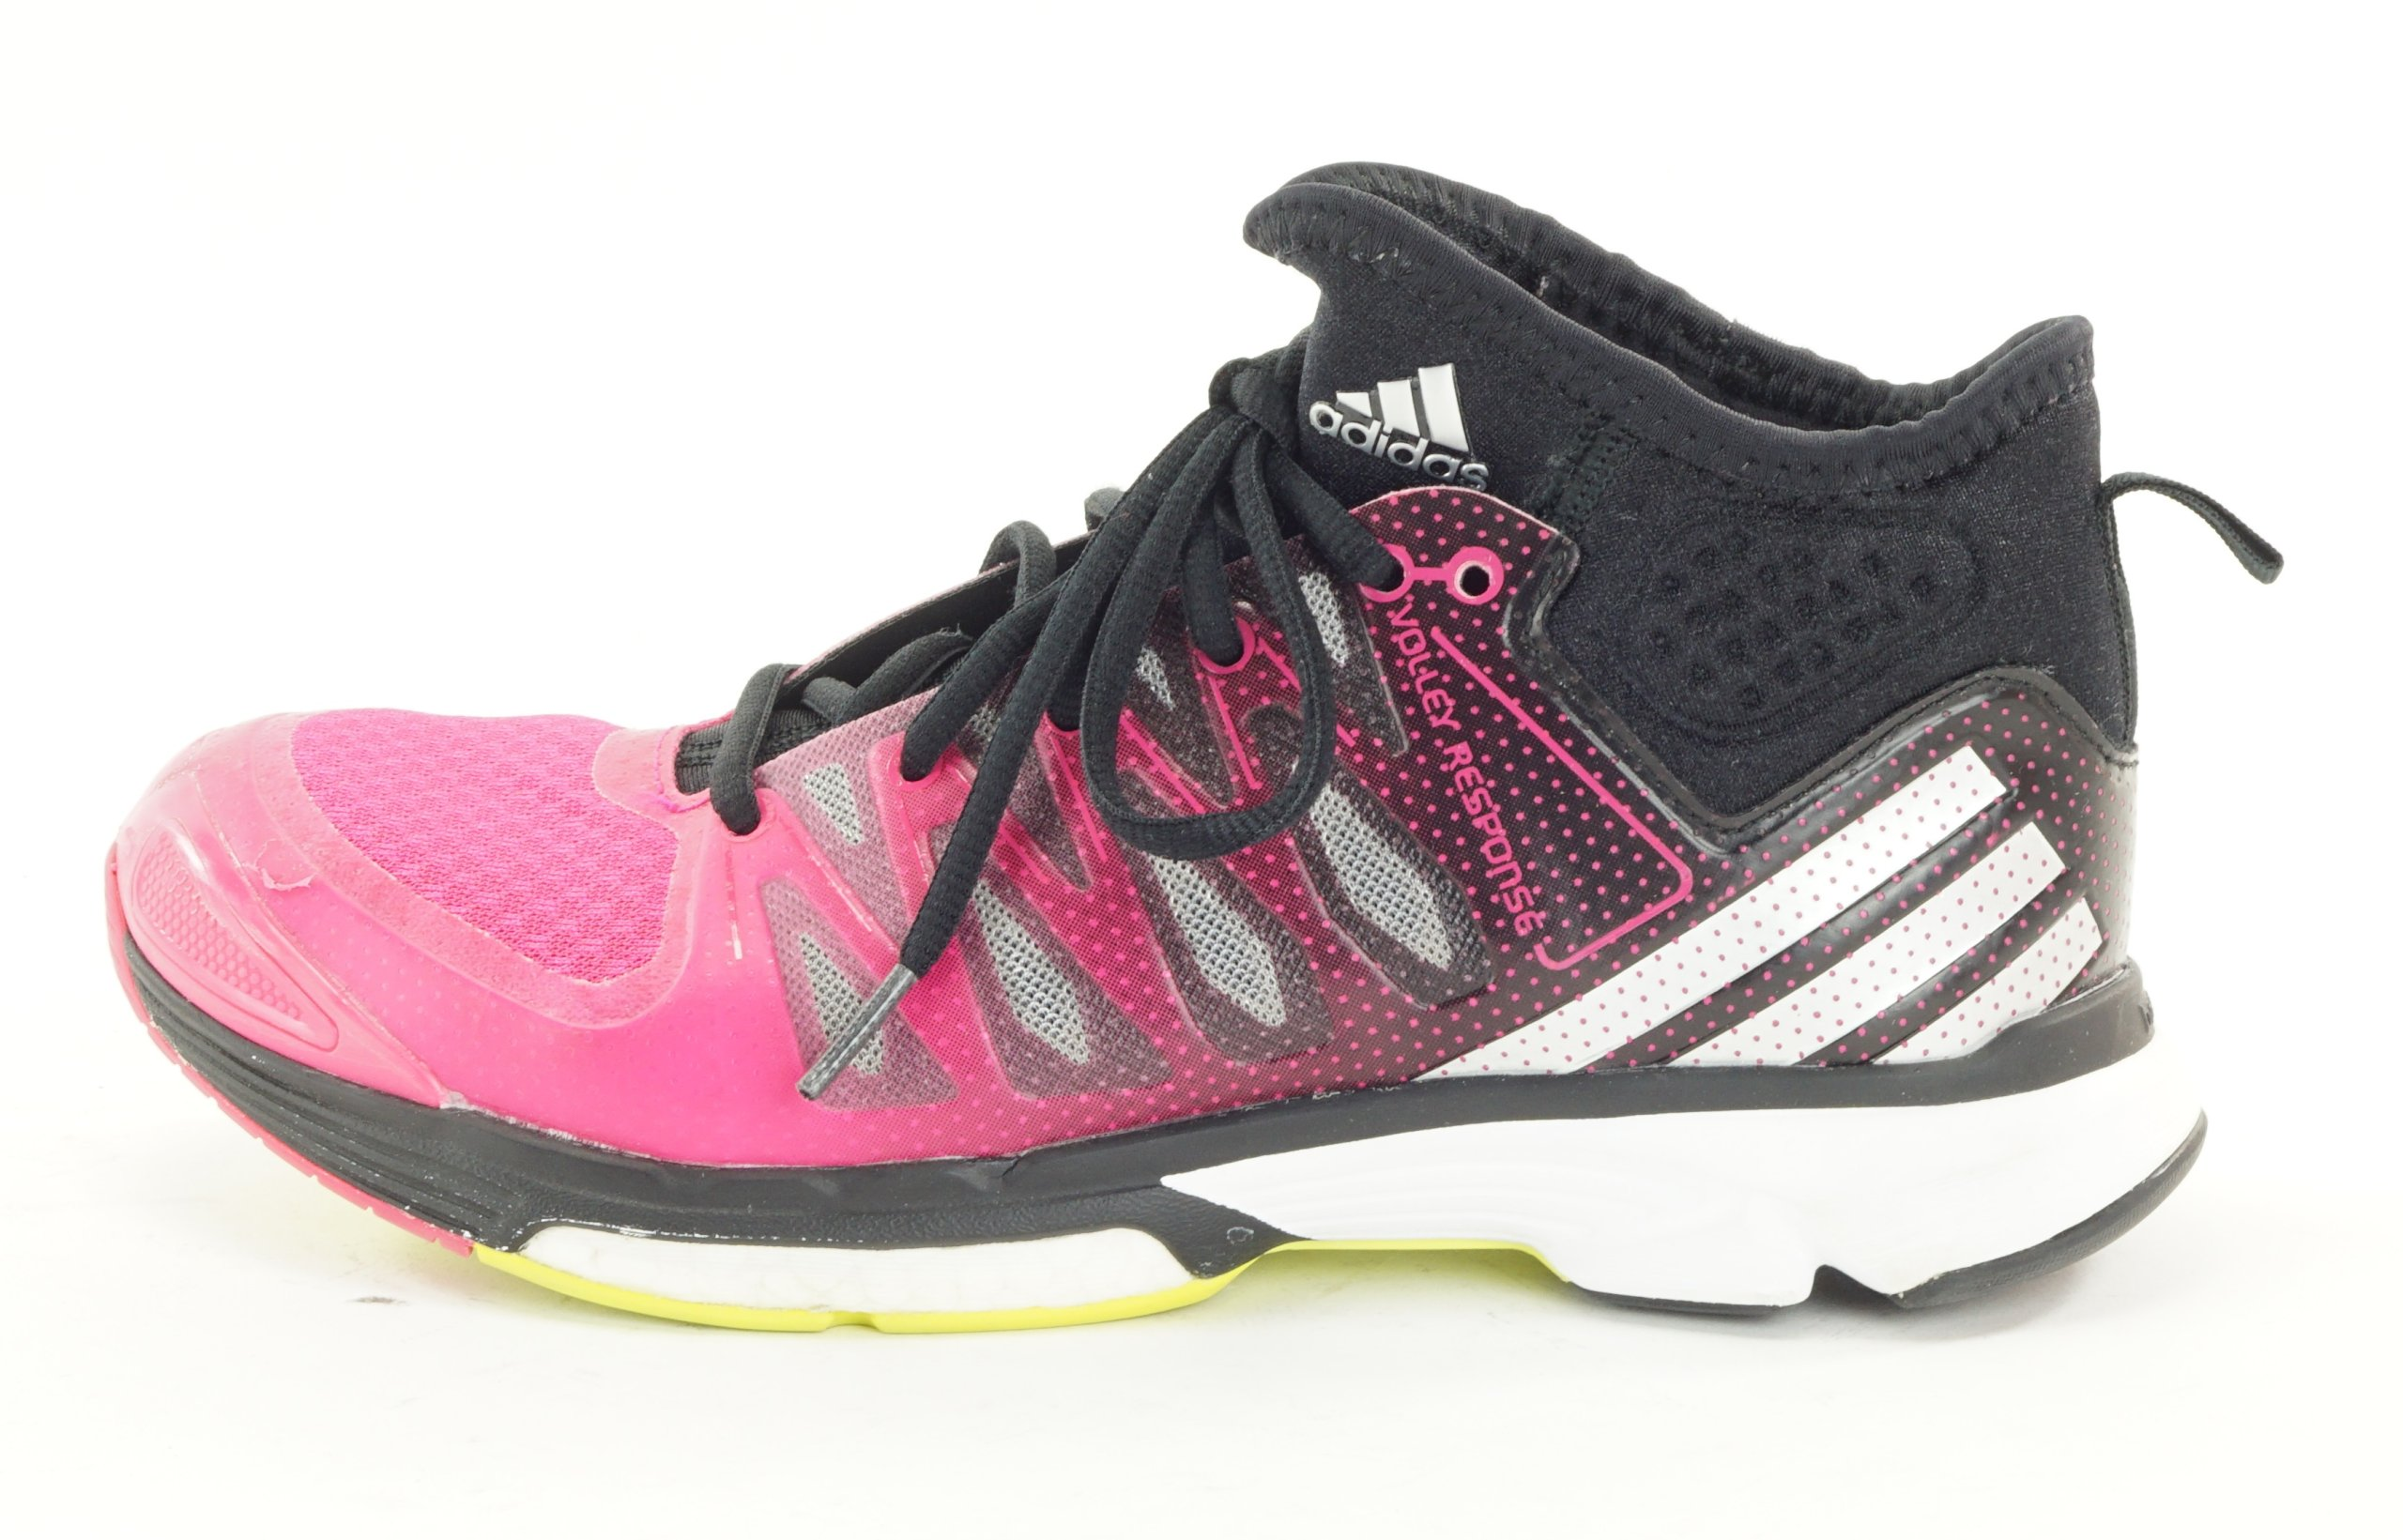 adidas volley response boost 2.0 pink